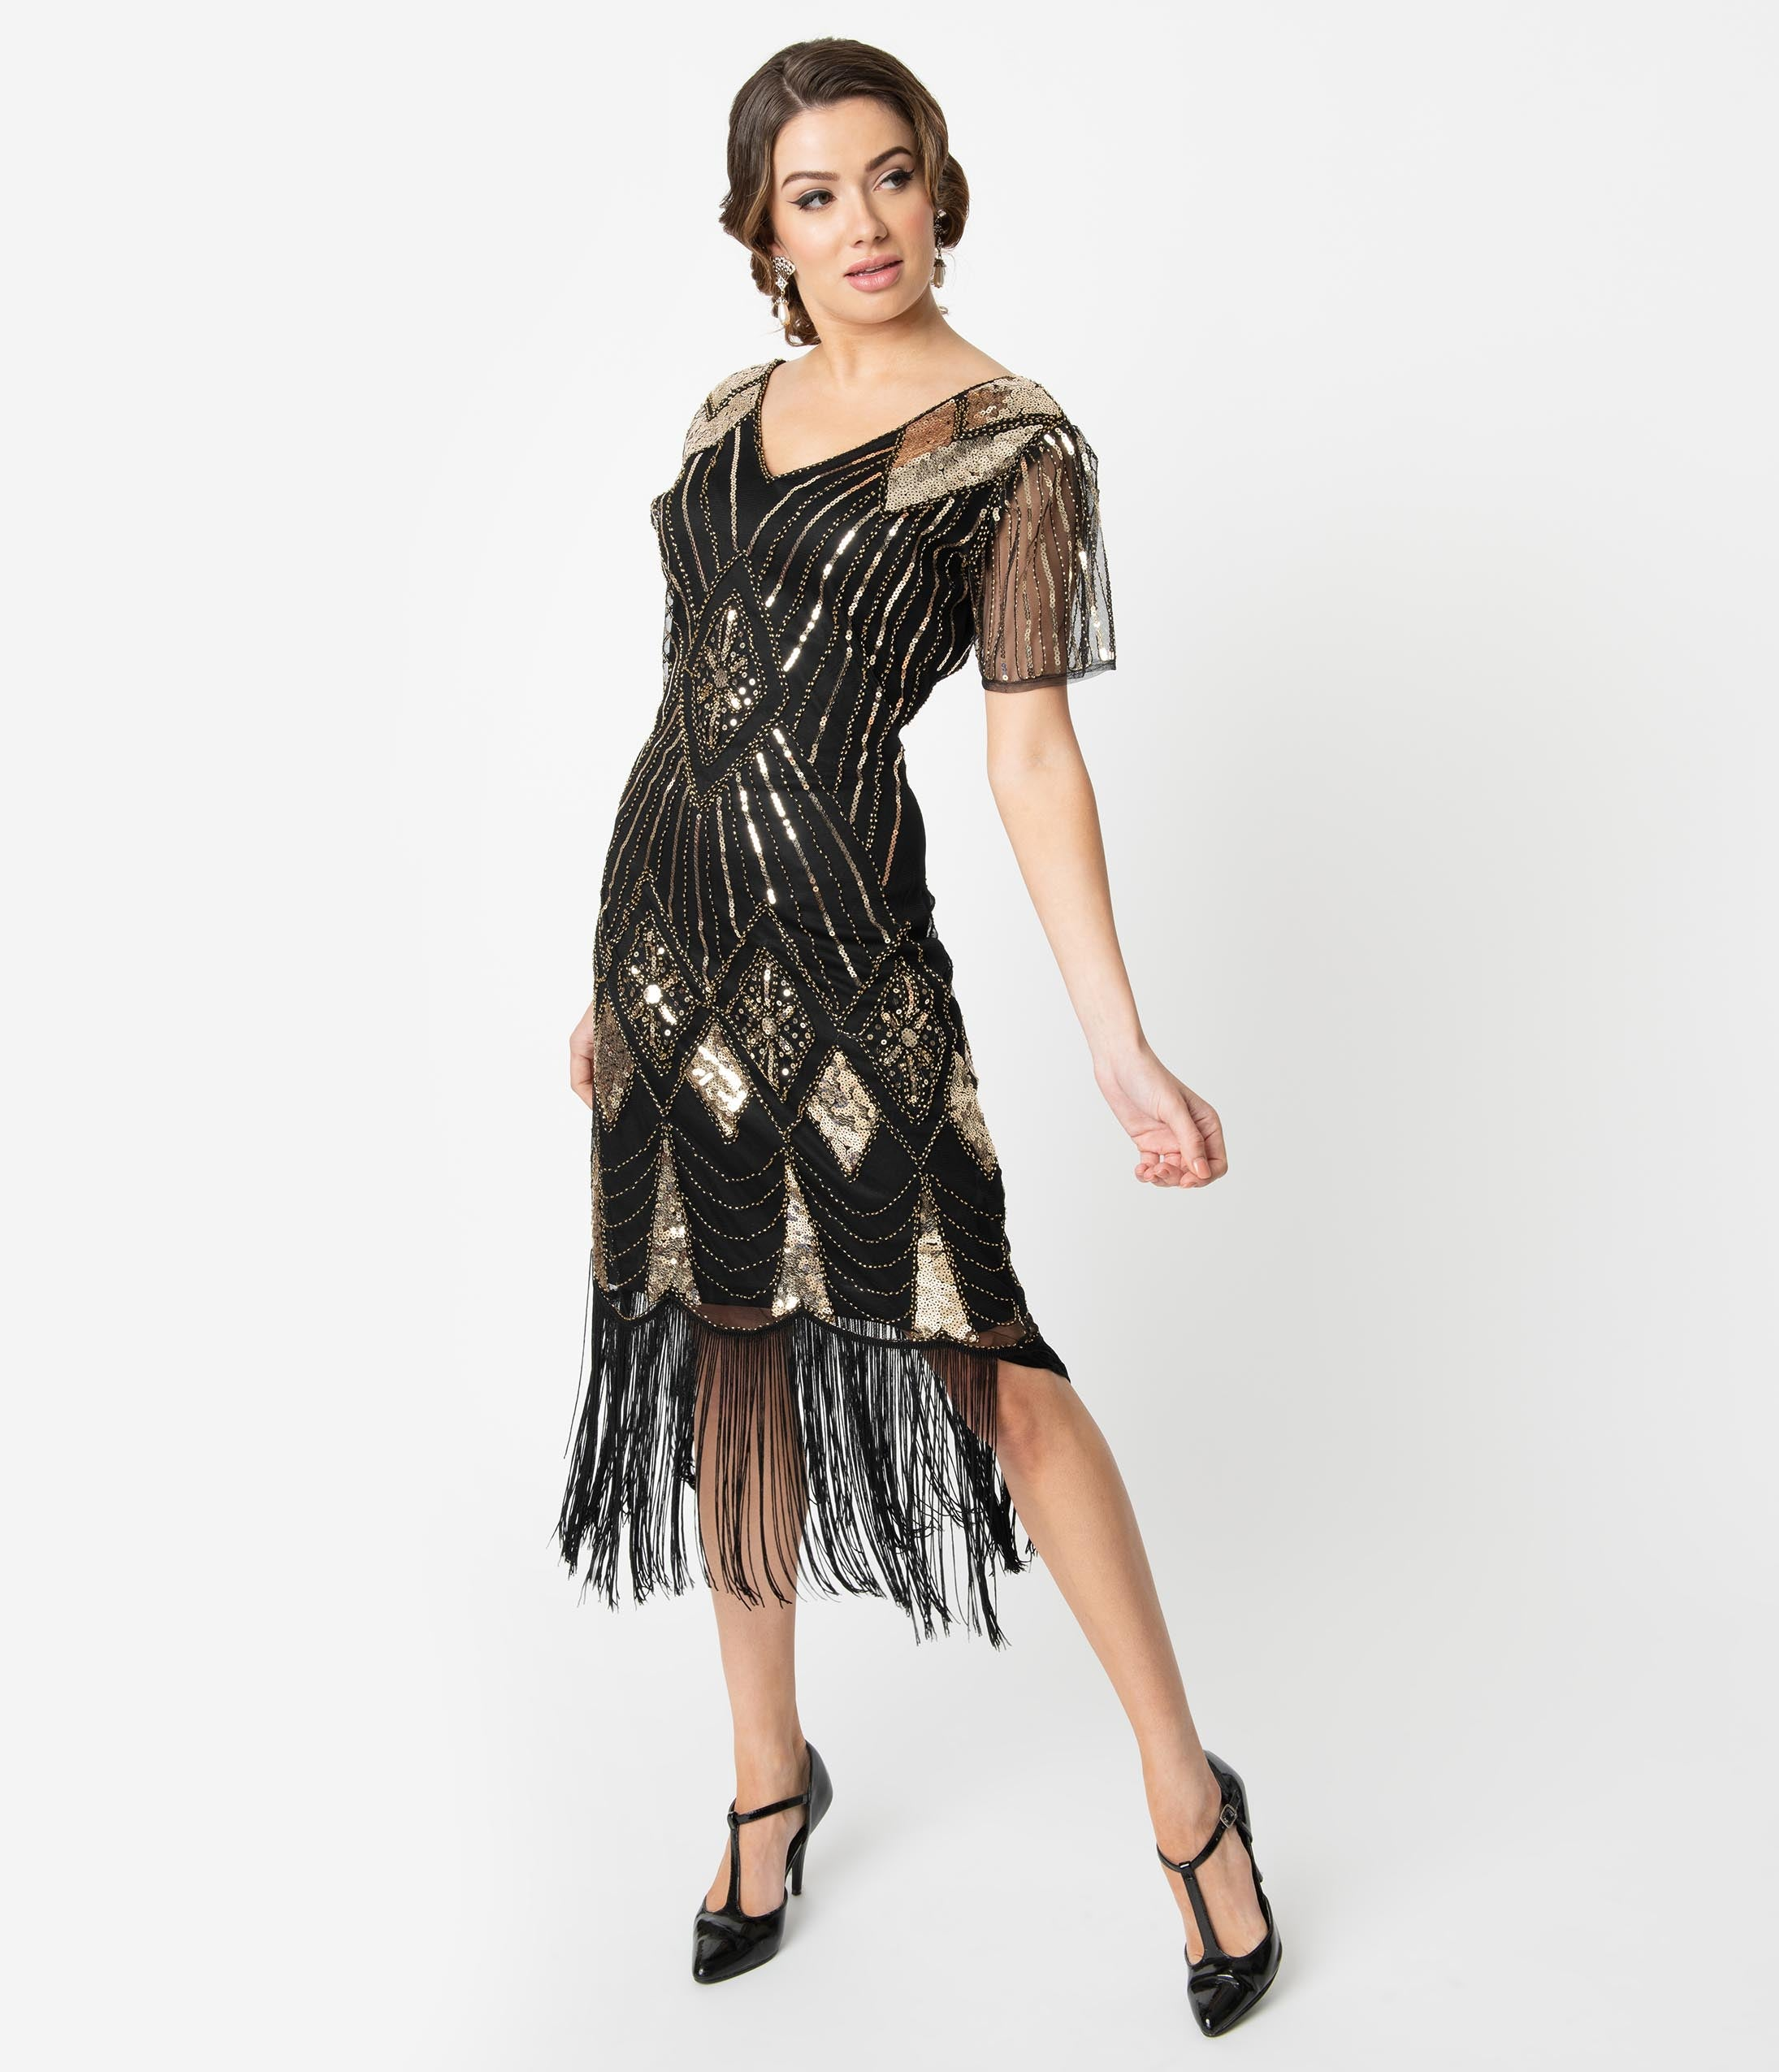 1920s Fashion & Clothing | Roaring 20s Attire Unique Vintage 1920S Gold Sequin  Black Fringe Katriane Flapper Dress $98.00 AT vintagedancer.com